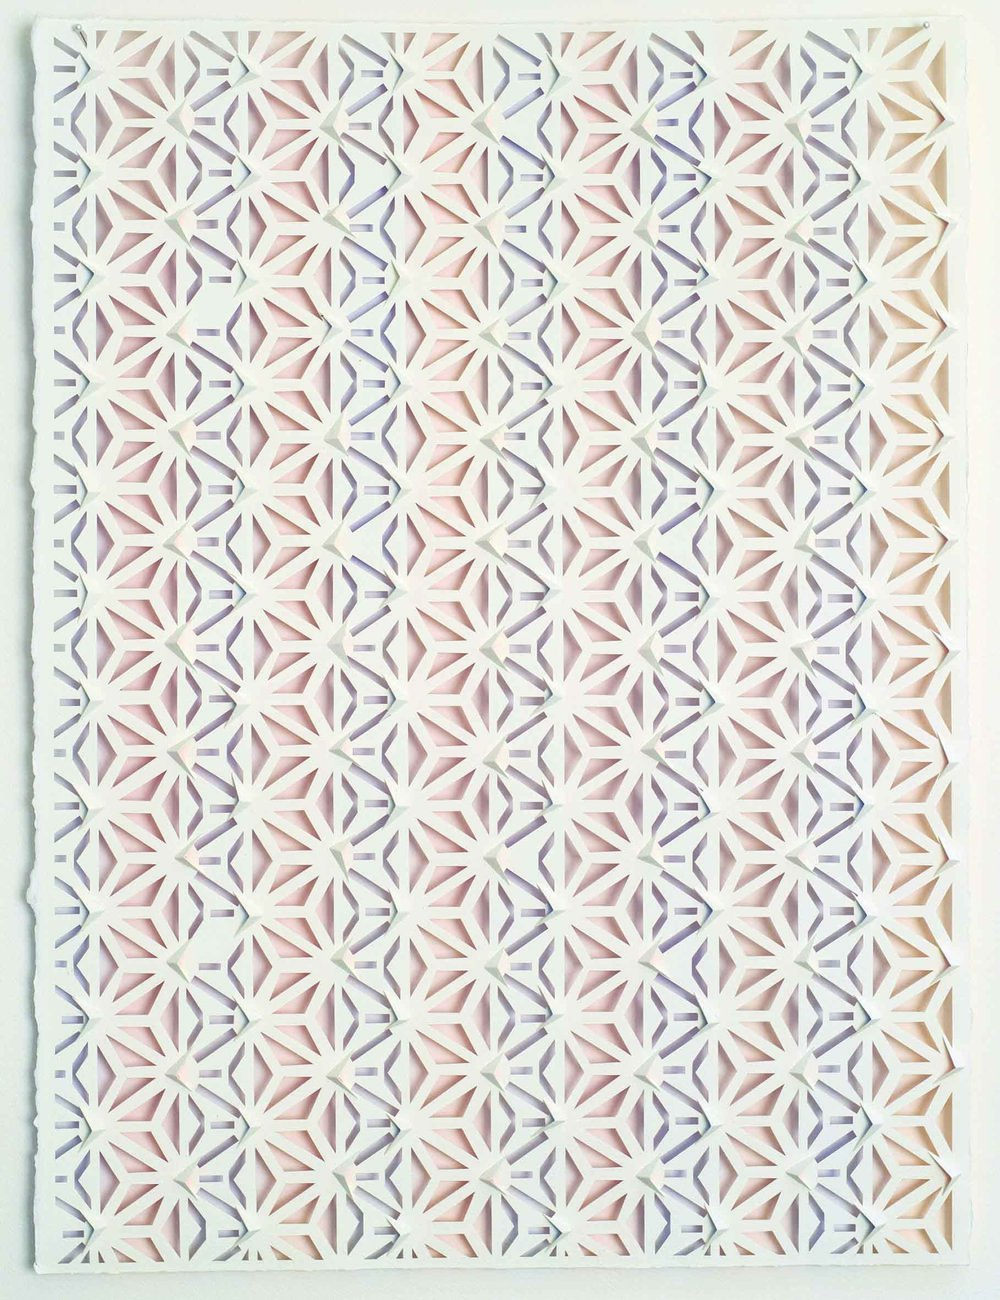 Lee Bethel, Komon 2018, watercolour on hand-cut paper, 76 x 54cm. Image courtesy the artist.